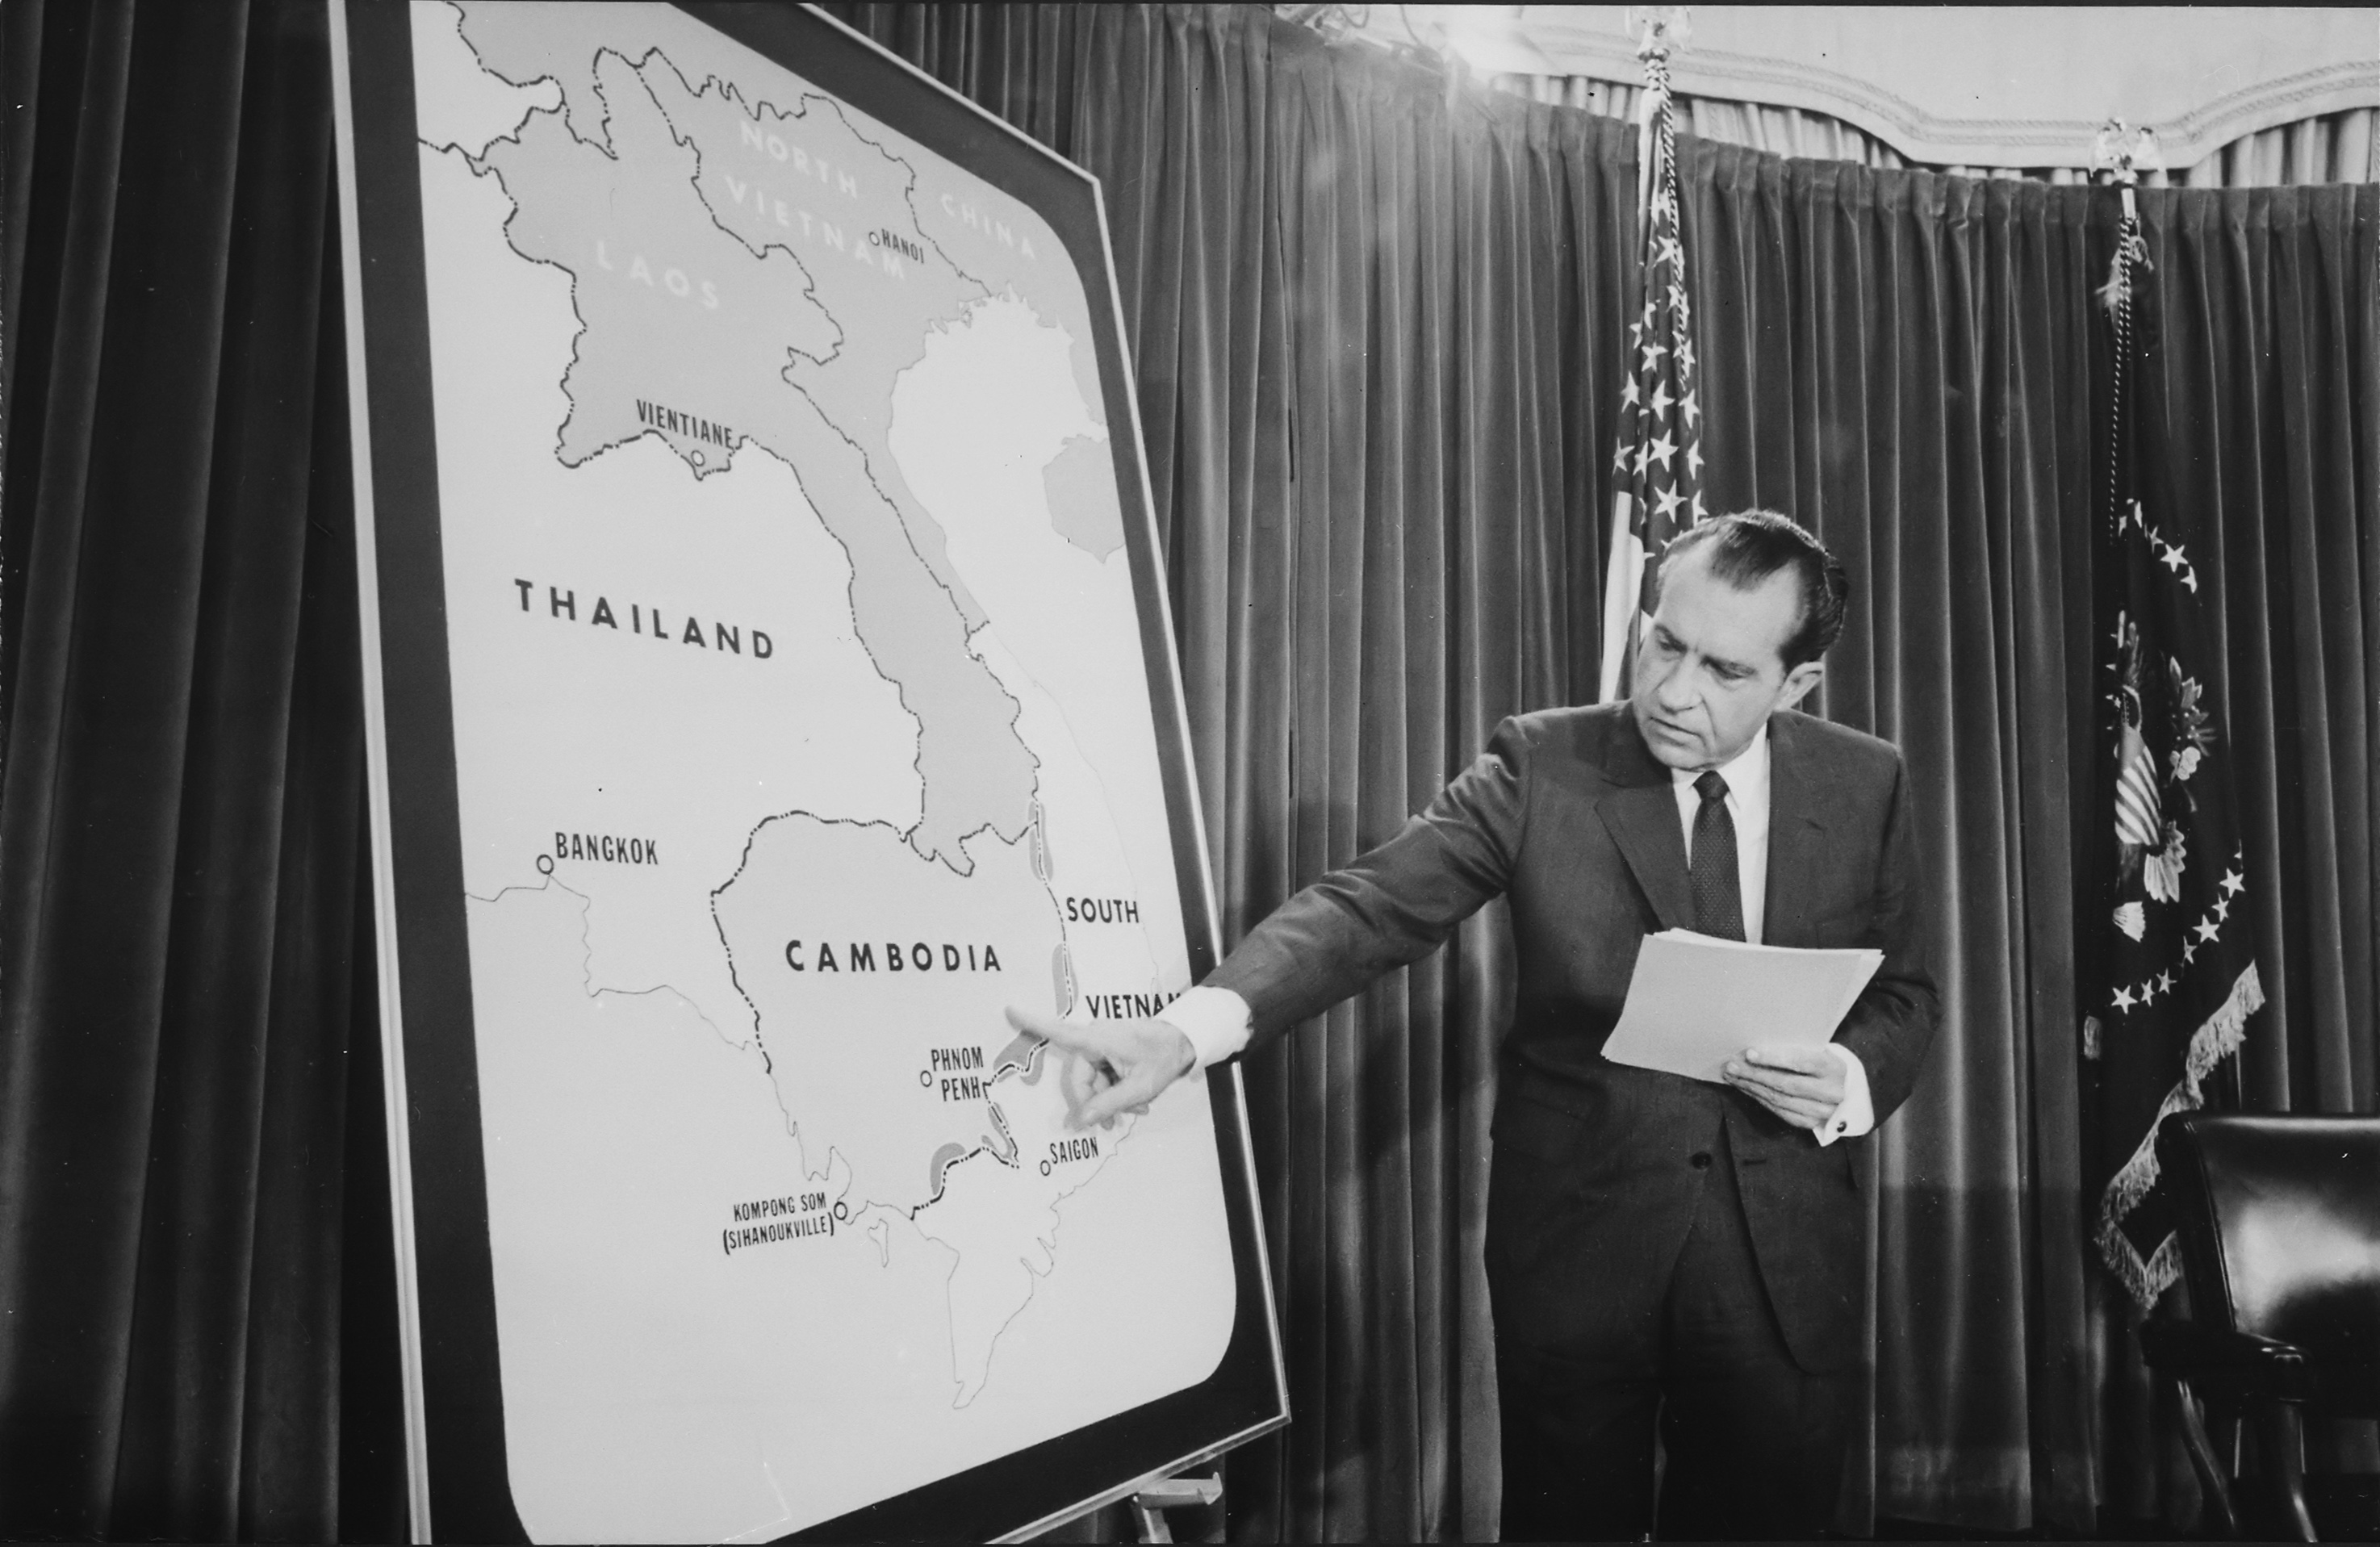 April 1970, President Nixon tells the American people about the necessity for the Cambodia Campaign to defeat the Viet Cong